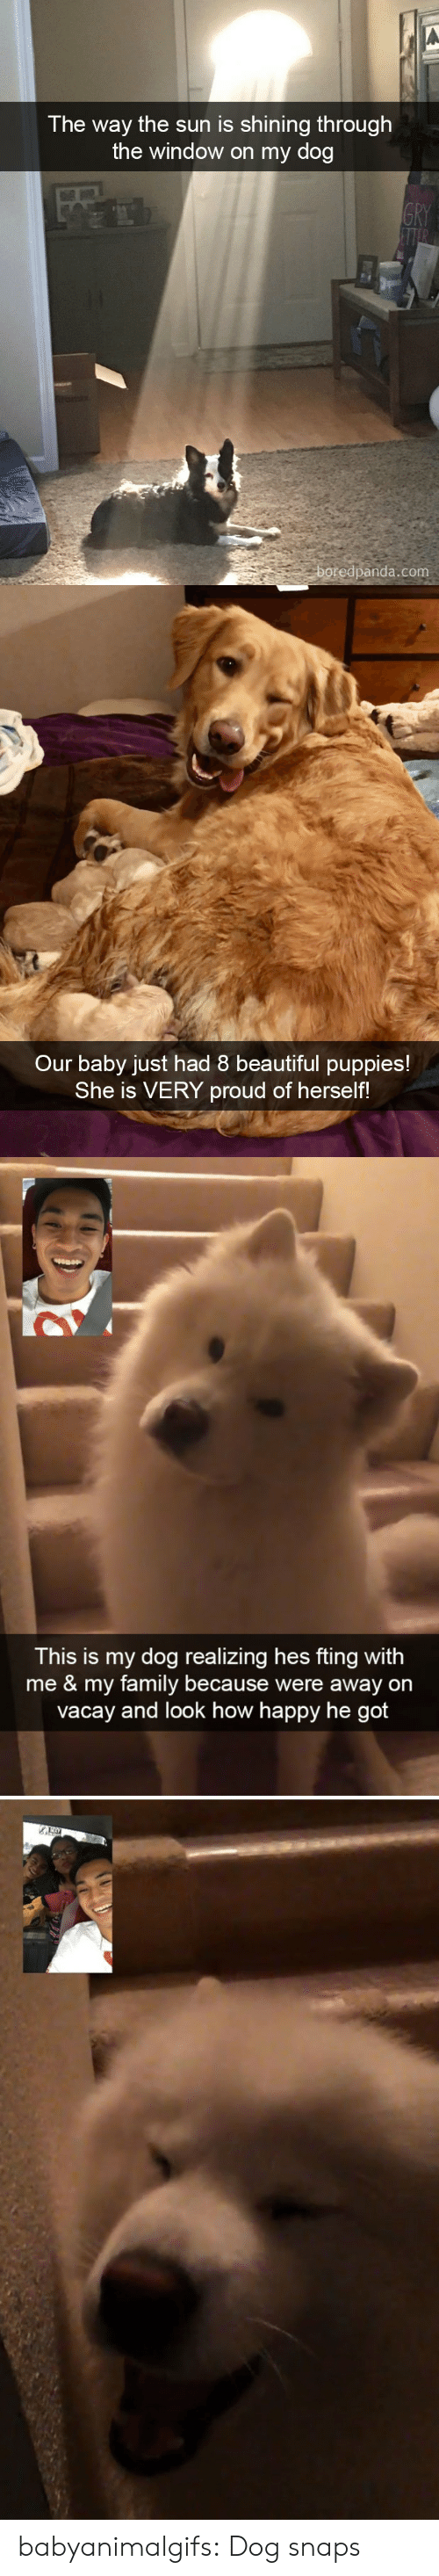 Beautiful, Family, and Puppies: The way the sun is shining thro  ugh  the window on my dog  oredpanda.com   Our baby just had 8 beautiful puppies!  She is VERY proud of herself!   This is my dog realizing hes fting with  me & my family because were away on  vacay and look how happy he got babyanimalgifs:  Dog snaps